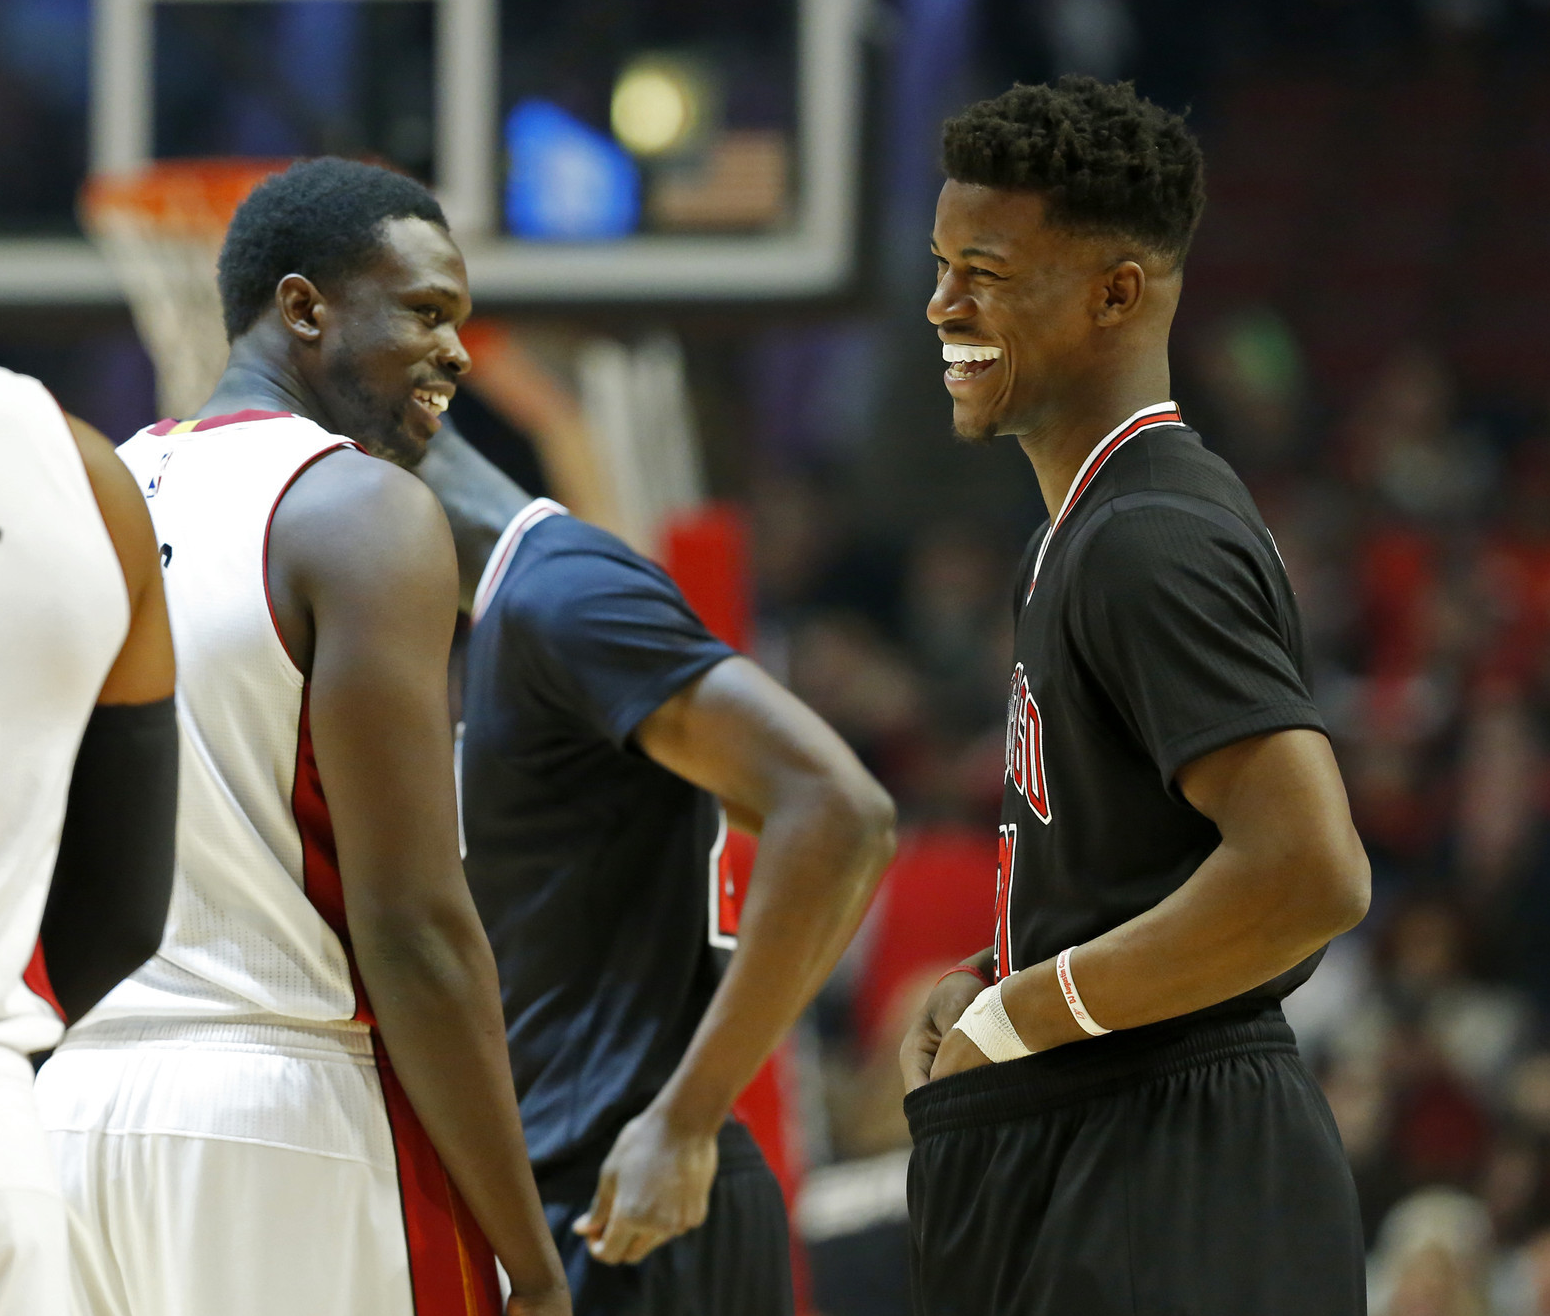 Jimmy Butler looks to surpass his predecessor Luol Deng – The